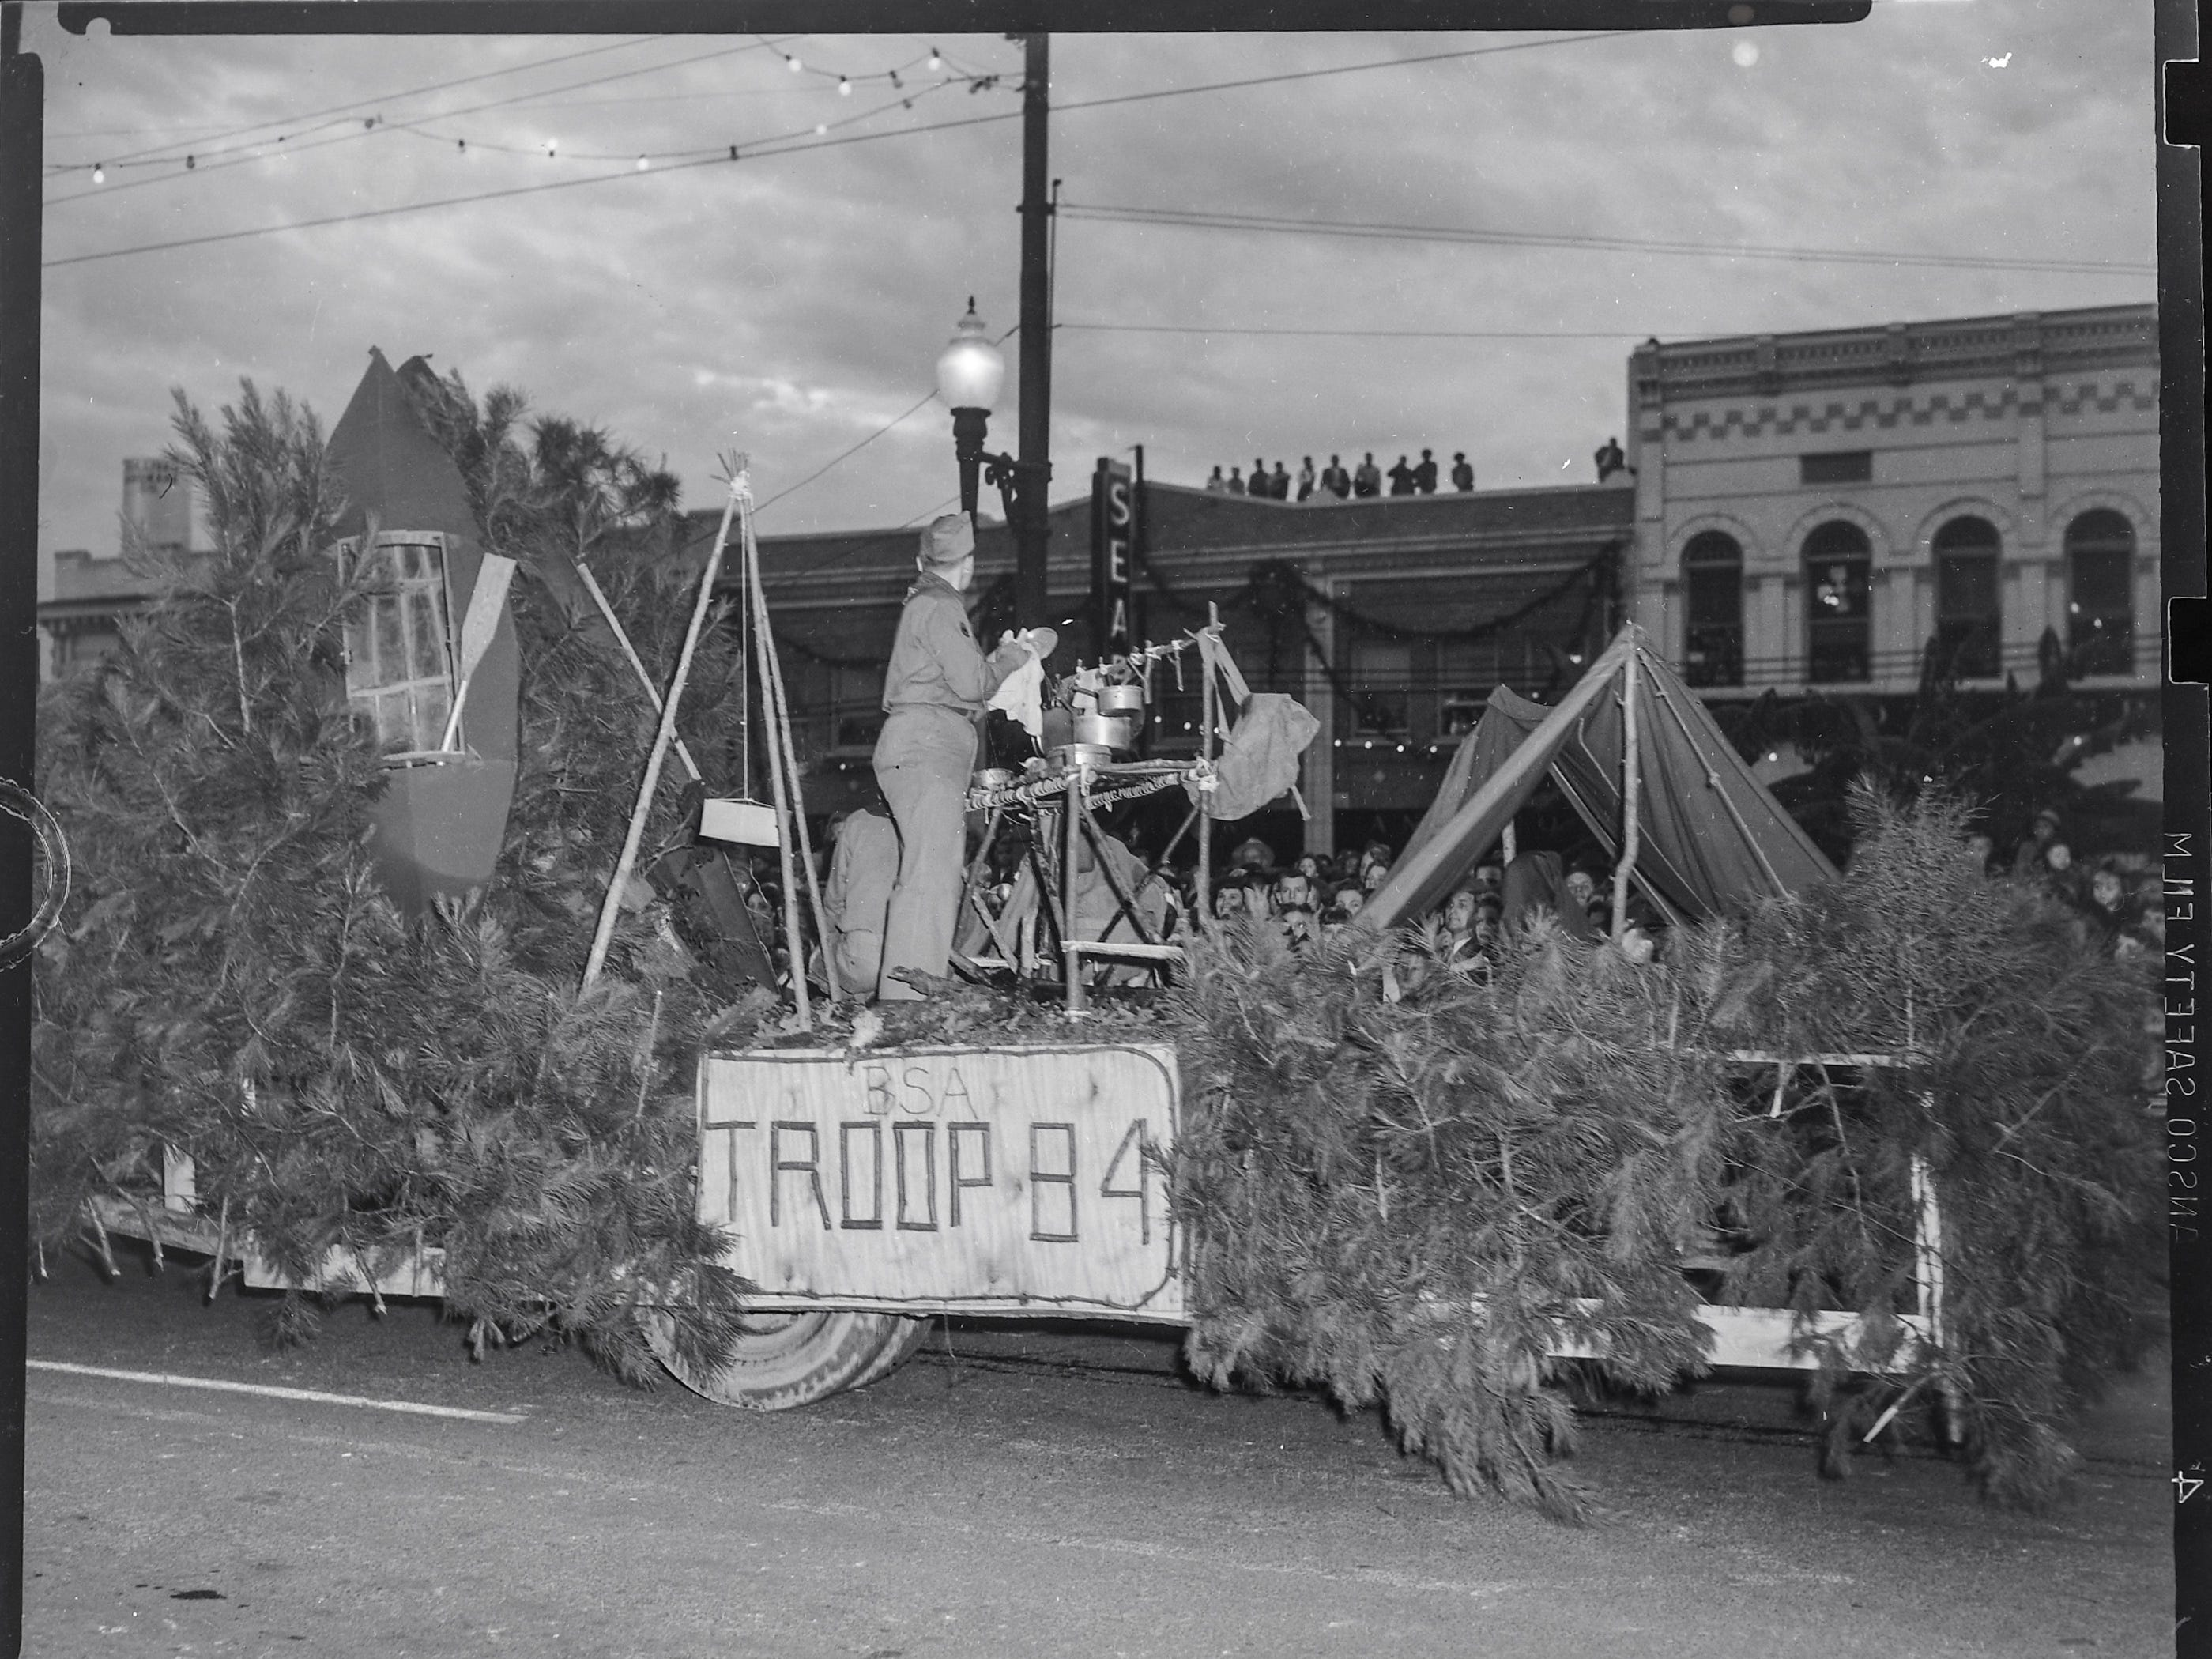 Boy Scouts of America Troop 84 of Central Presbyterian Church in Anderson, on their float decorated like a campsite, pass viewers both on the ground and on the rooftops along Main Street in Anderson, during the Anderson Christmas Parade on December 1949.